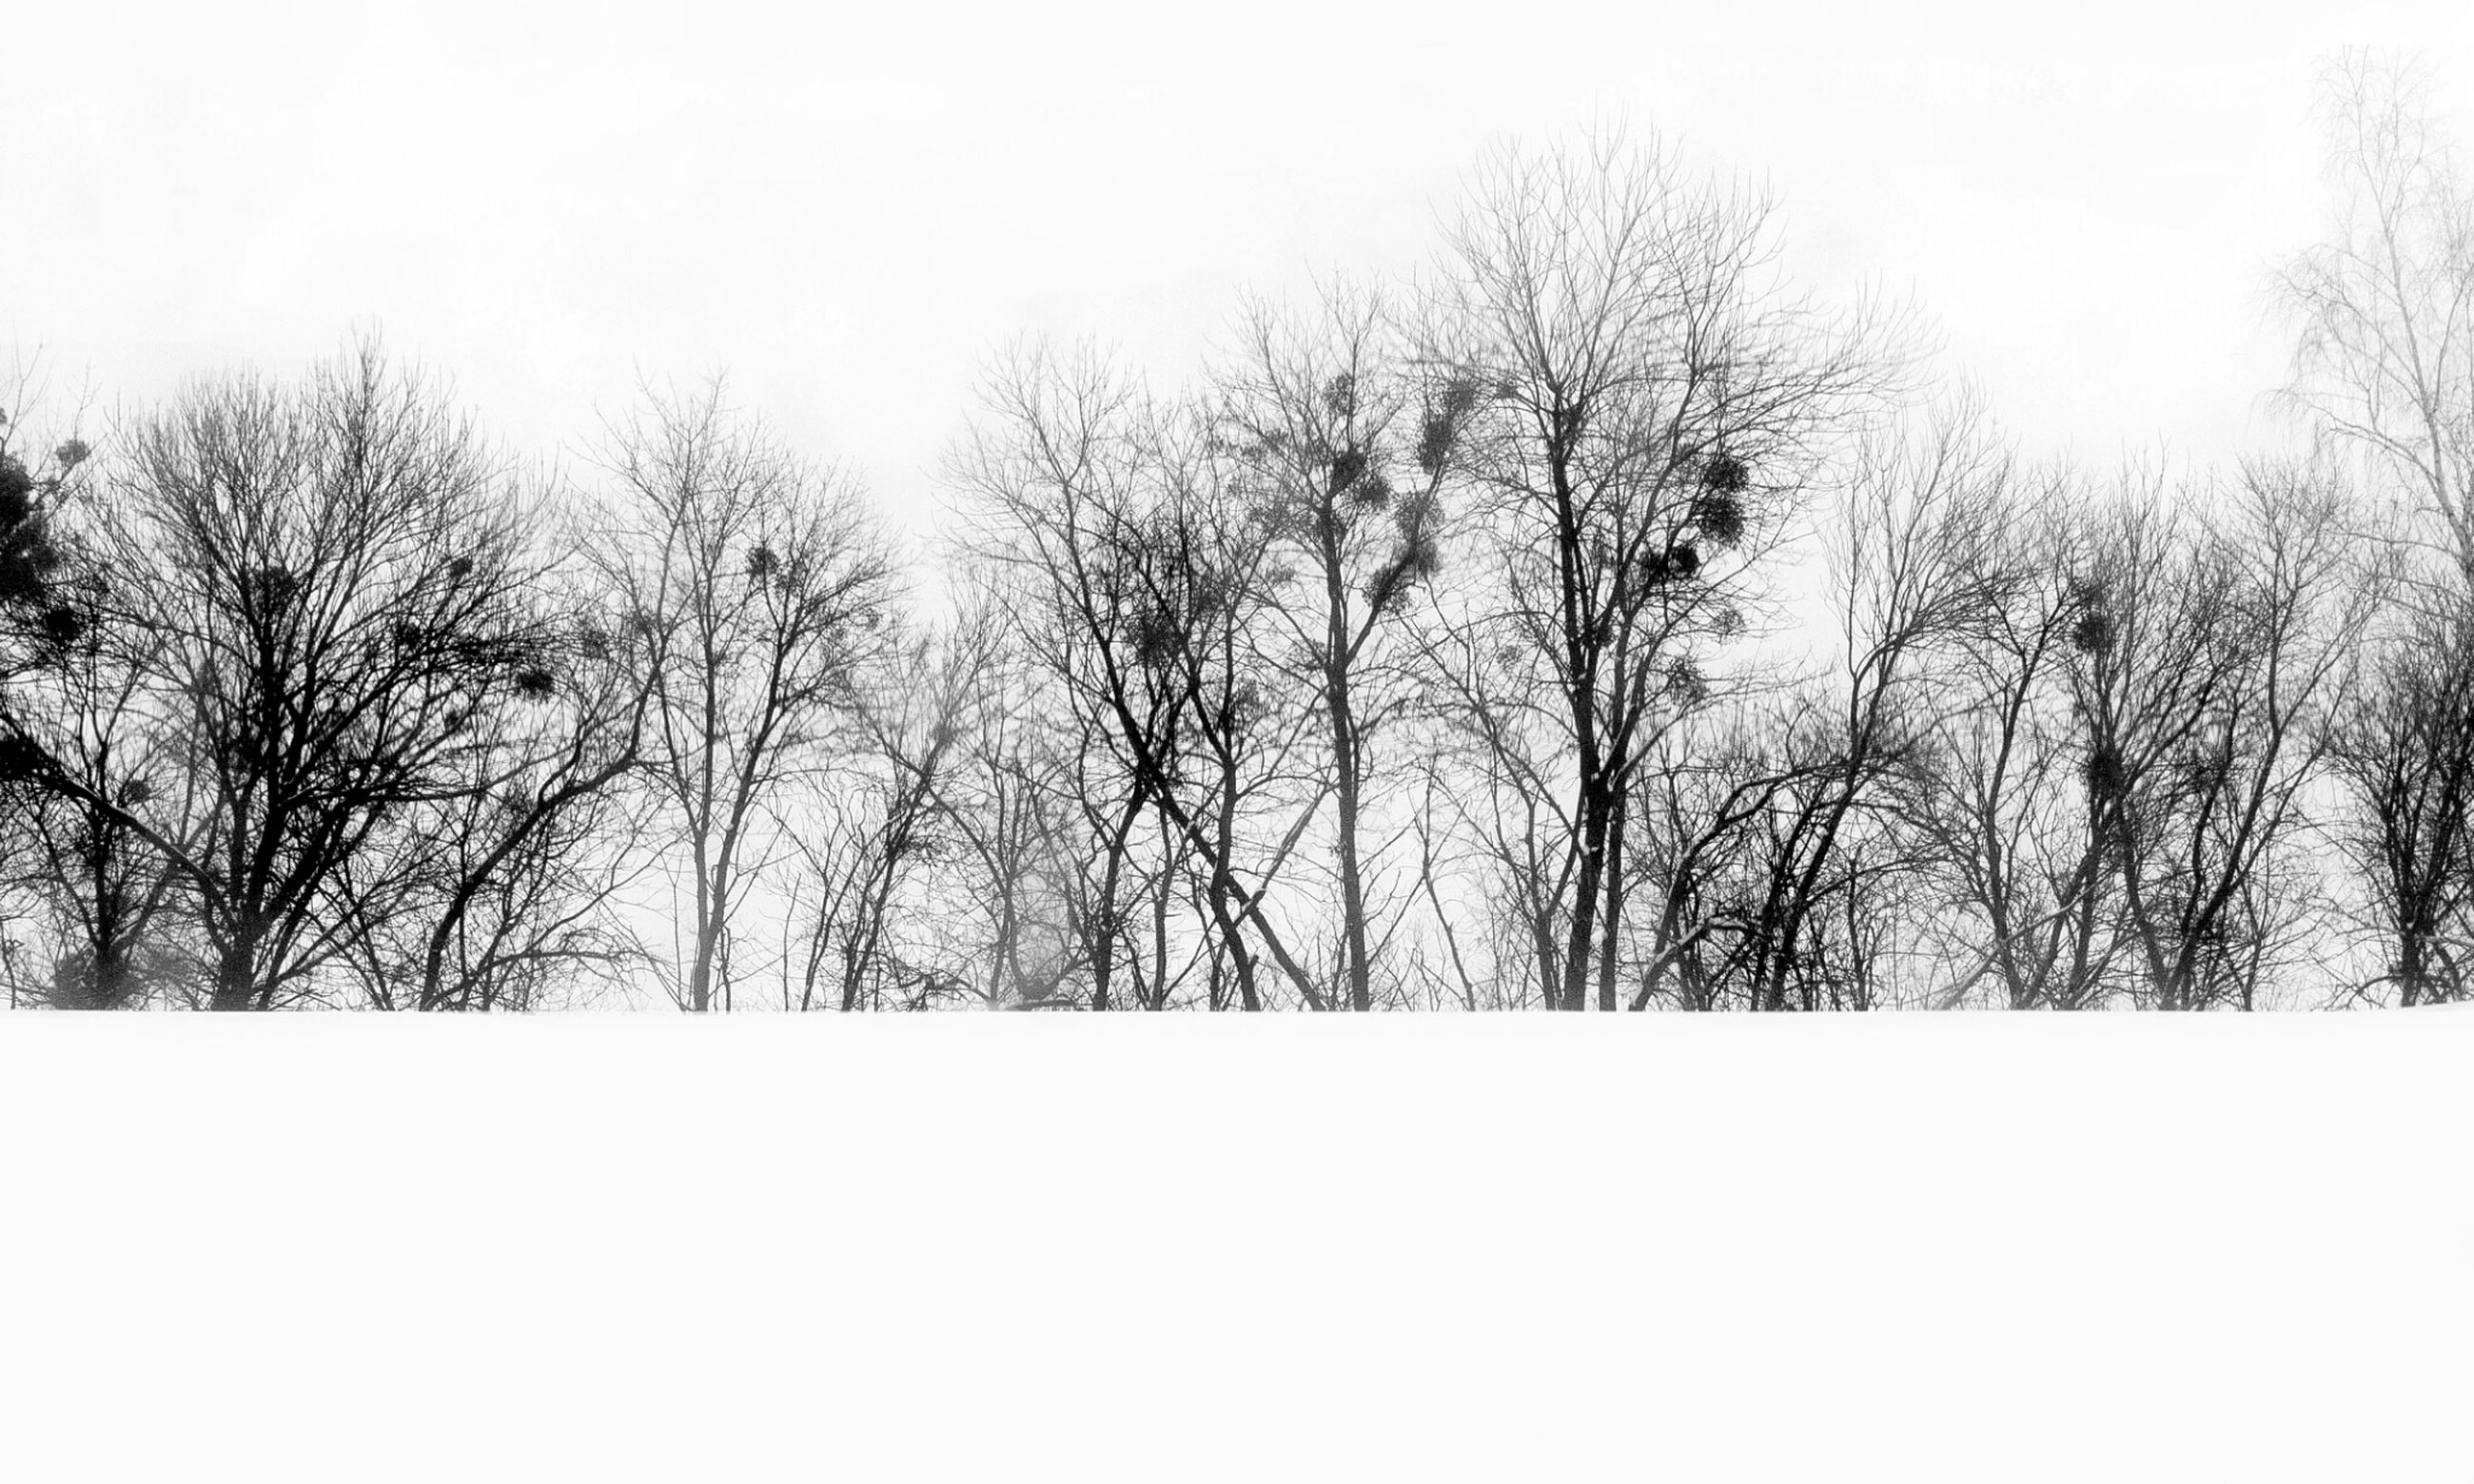 bare tree, clear sky, tree, tranquility, winter, tranquil scene, cold temperature, copy space, nature, snow, beauty in nature, branch, scenics, low angle view, weather, outdoors, sky, day, no people, landscape